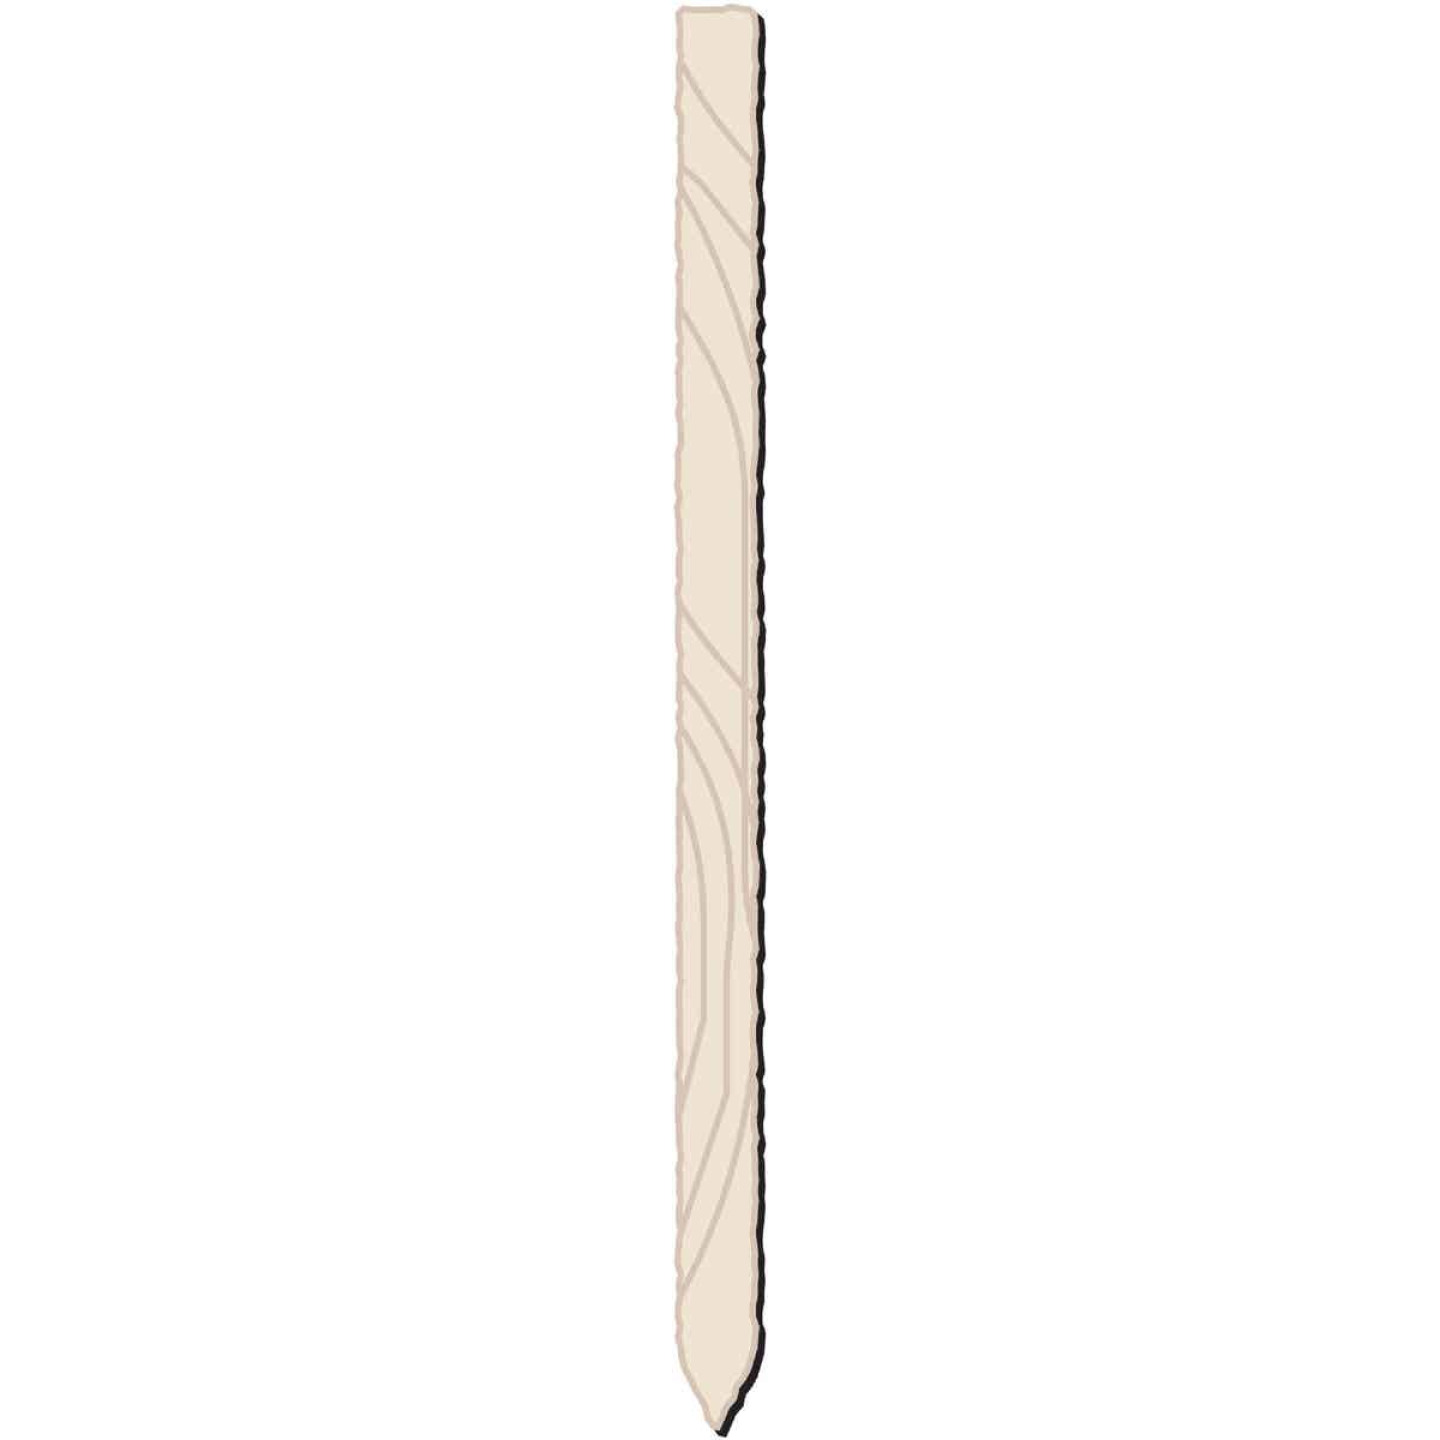 Hy-Ko 1.25 In. x 21 In. Wooden Sign Stake Image 1